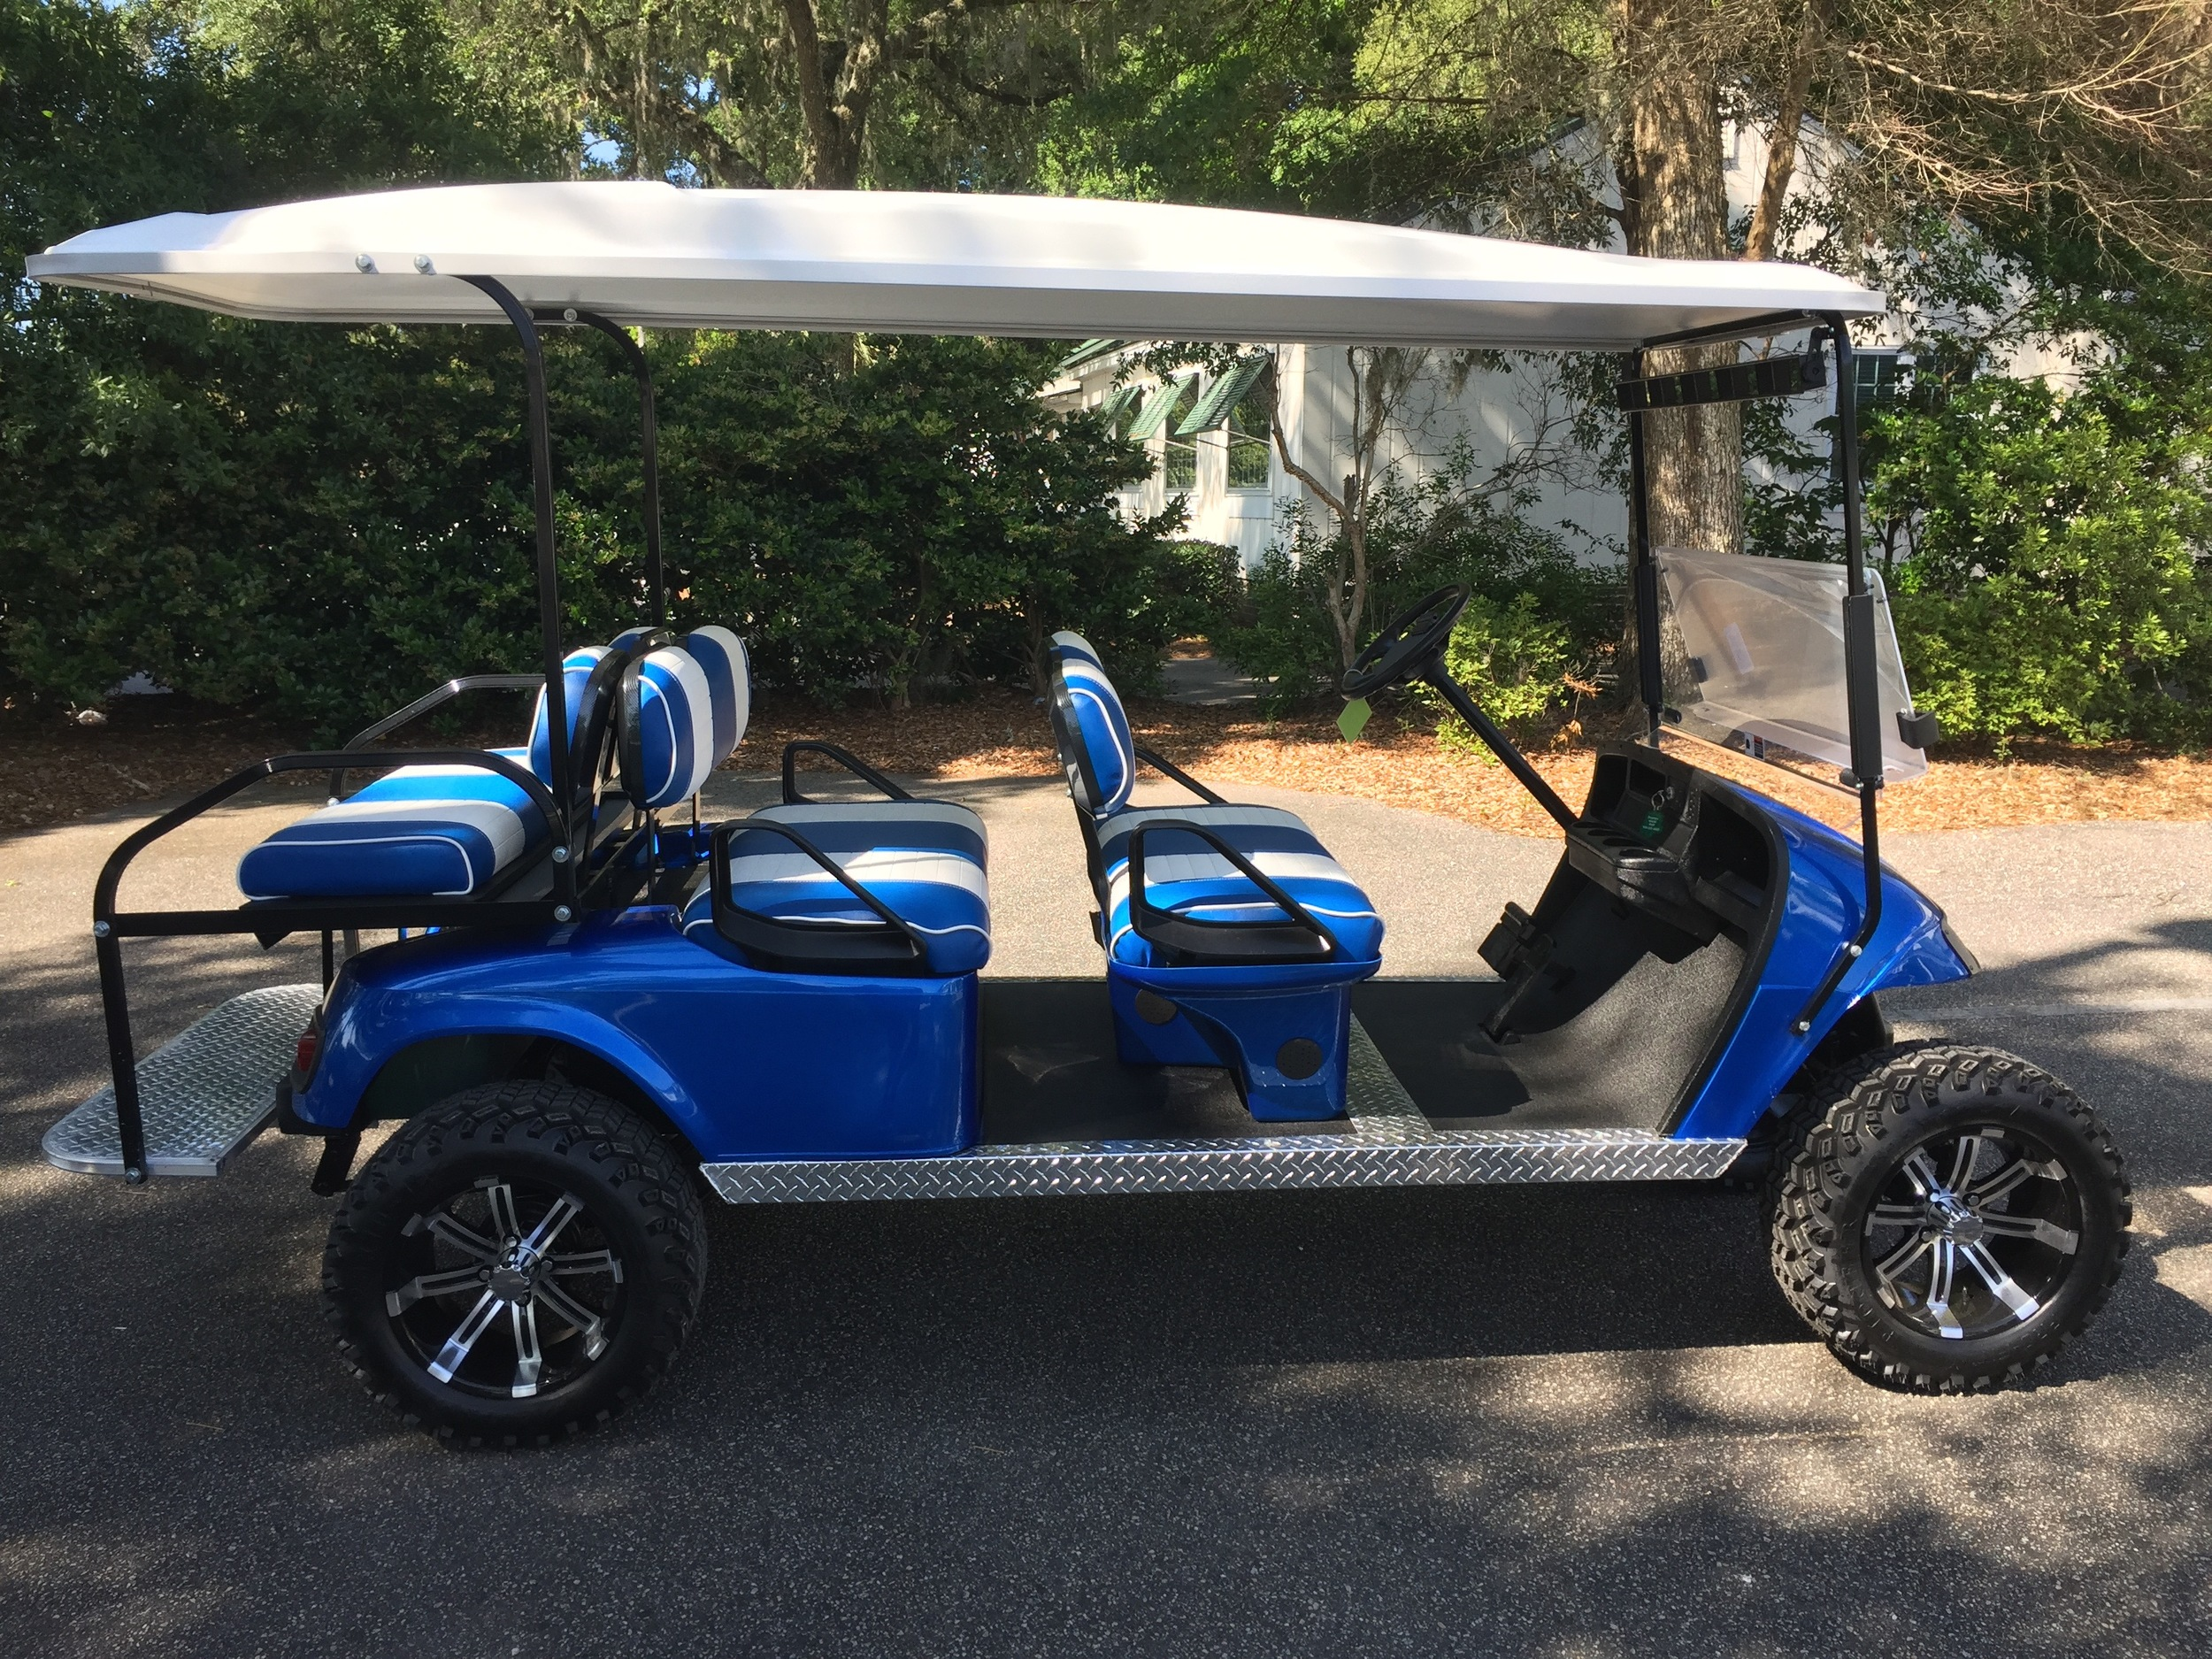 2015 Viper Blue EZGO Lifted Trolley —-  Blue/white seats, white top, new 2019 batteries (6-8vt), high speed code, LED lights, Backlash (23x10x14) tires, state of charge meter, mirror, and flip windshield